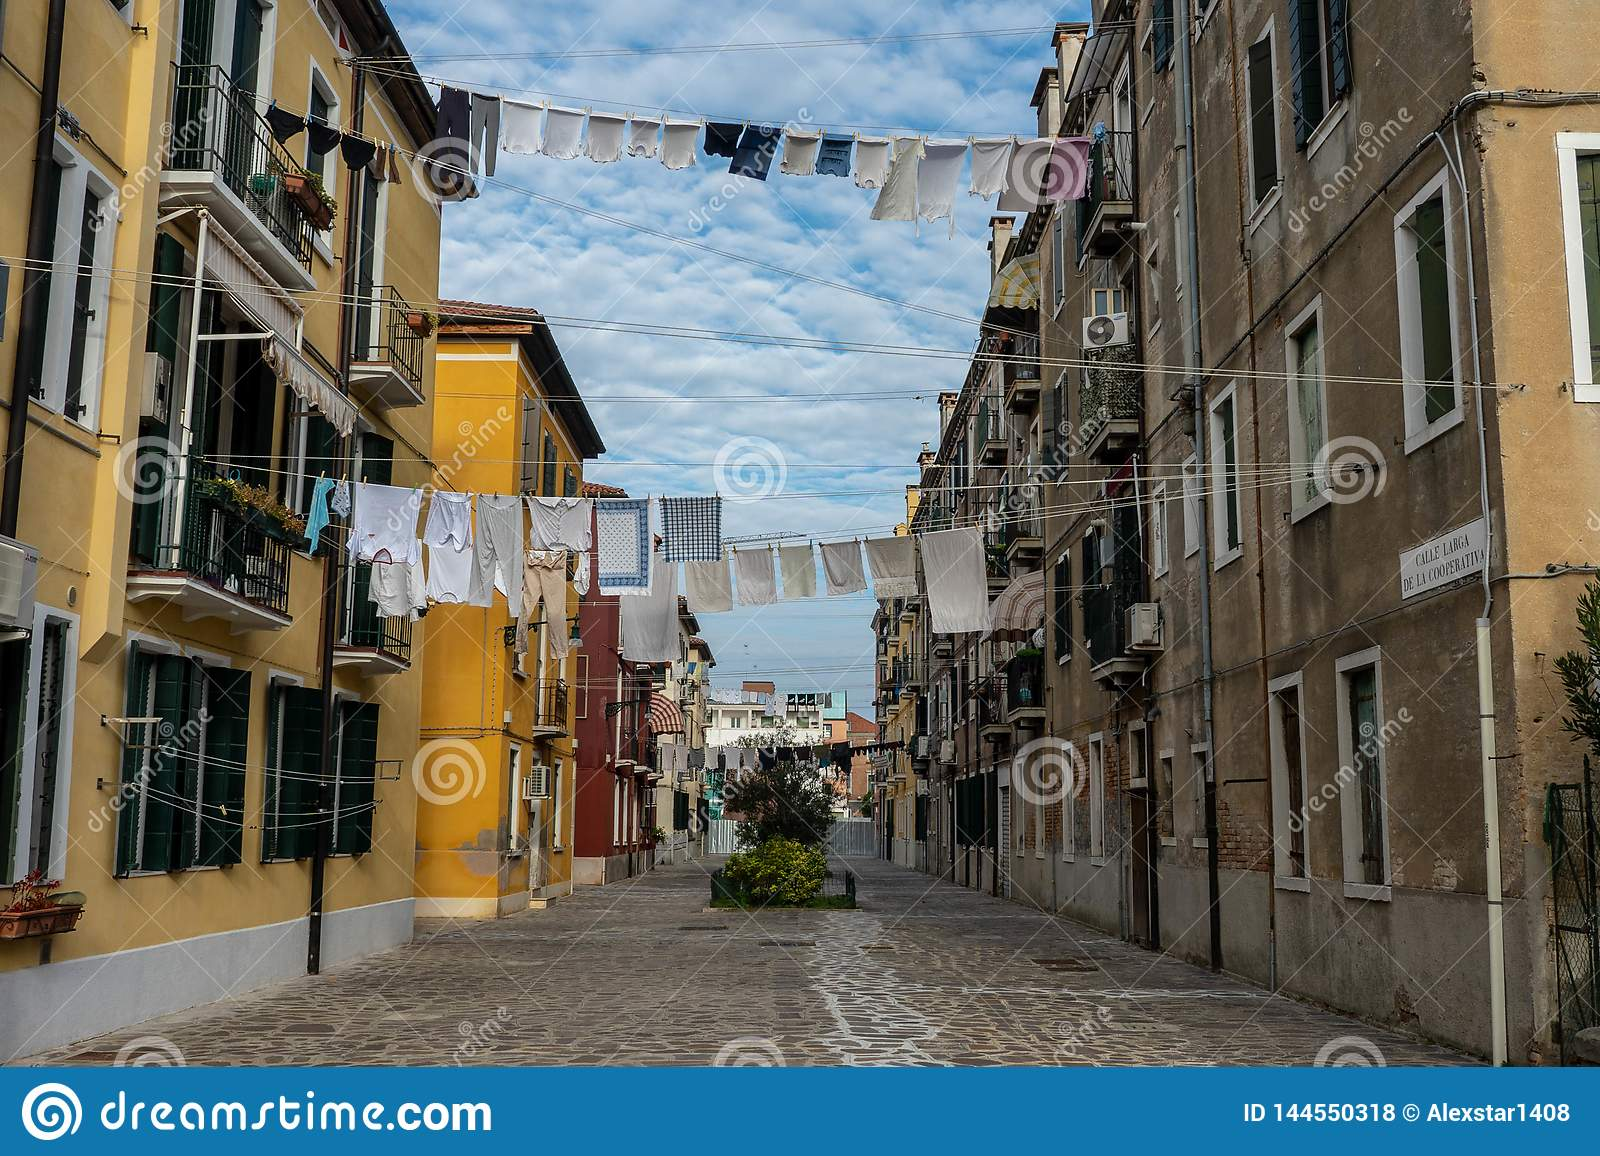 Venice streets with cloths hanging out on lines